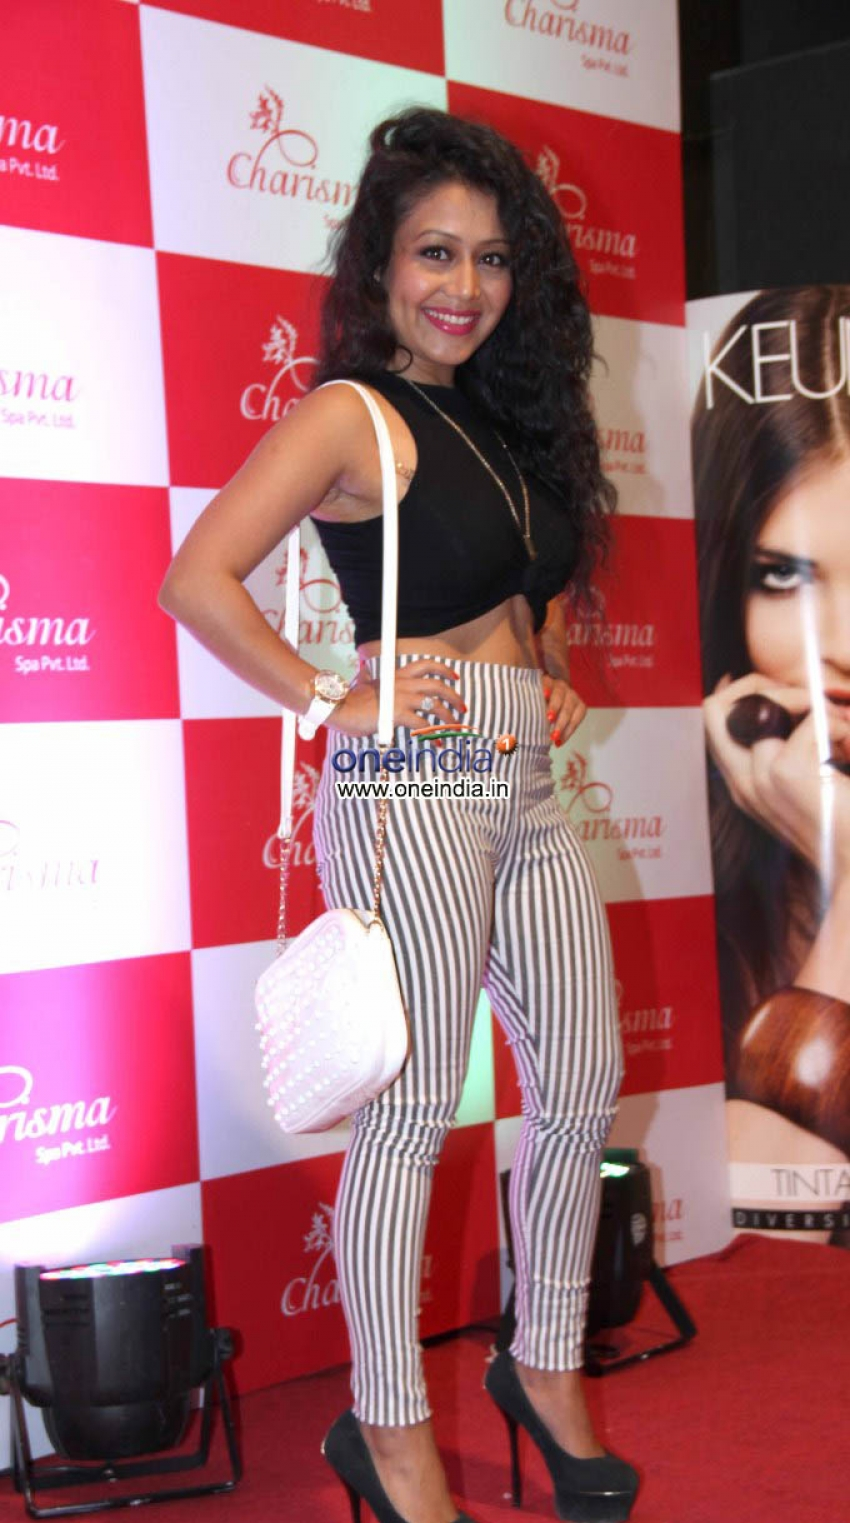 Charisma spa launch at Lokhandwala Mumbai Photos